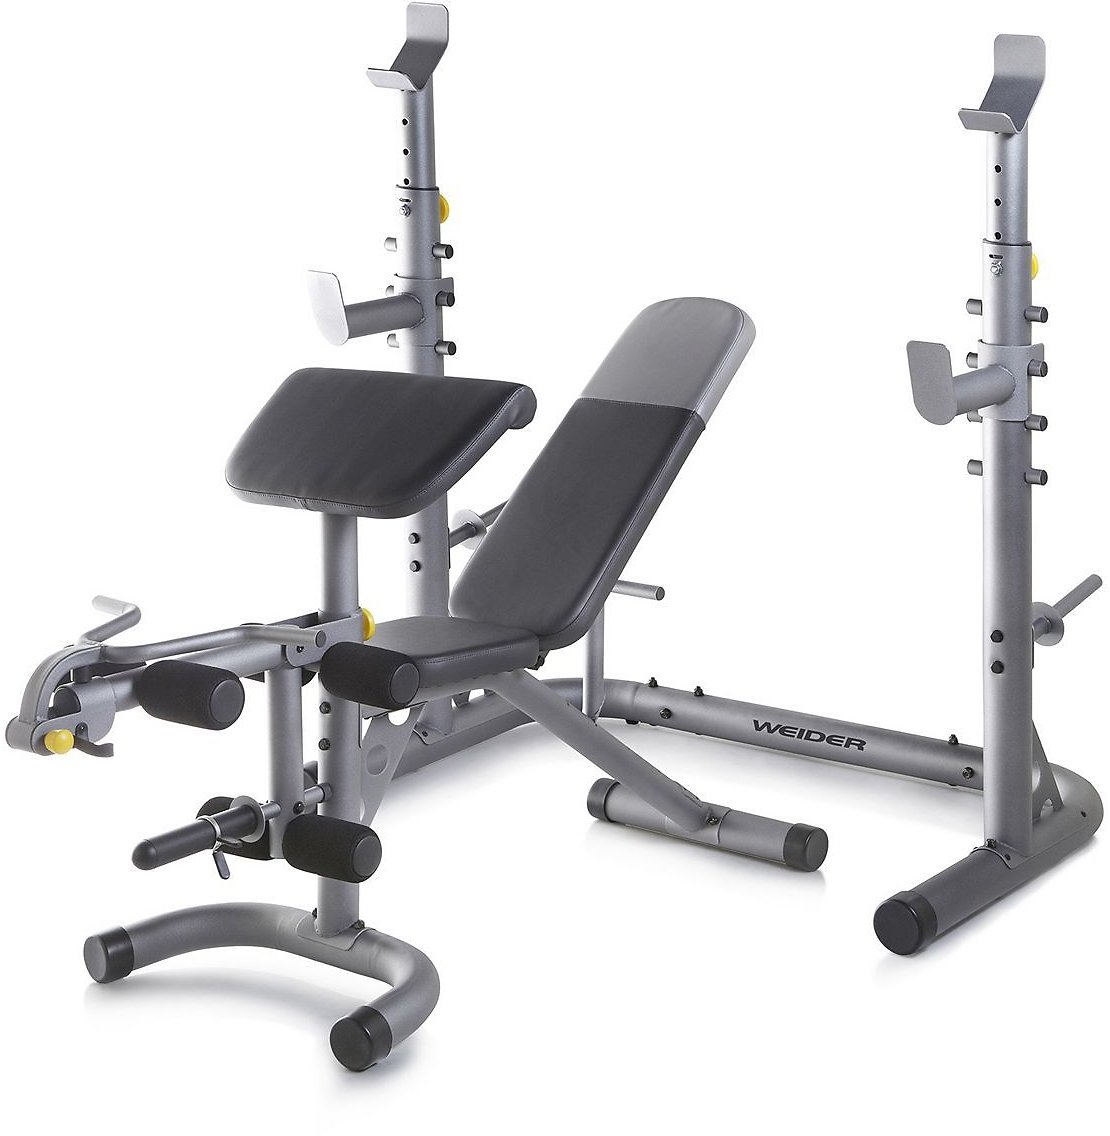 Weider Olympic Workout Bench